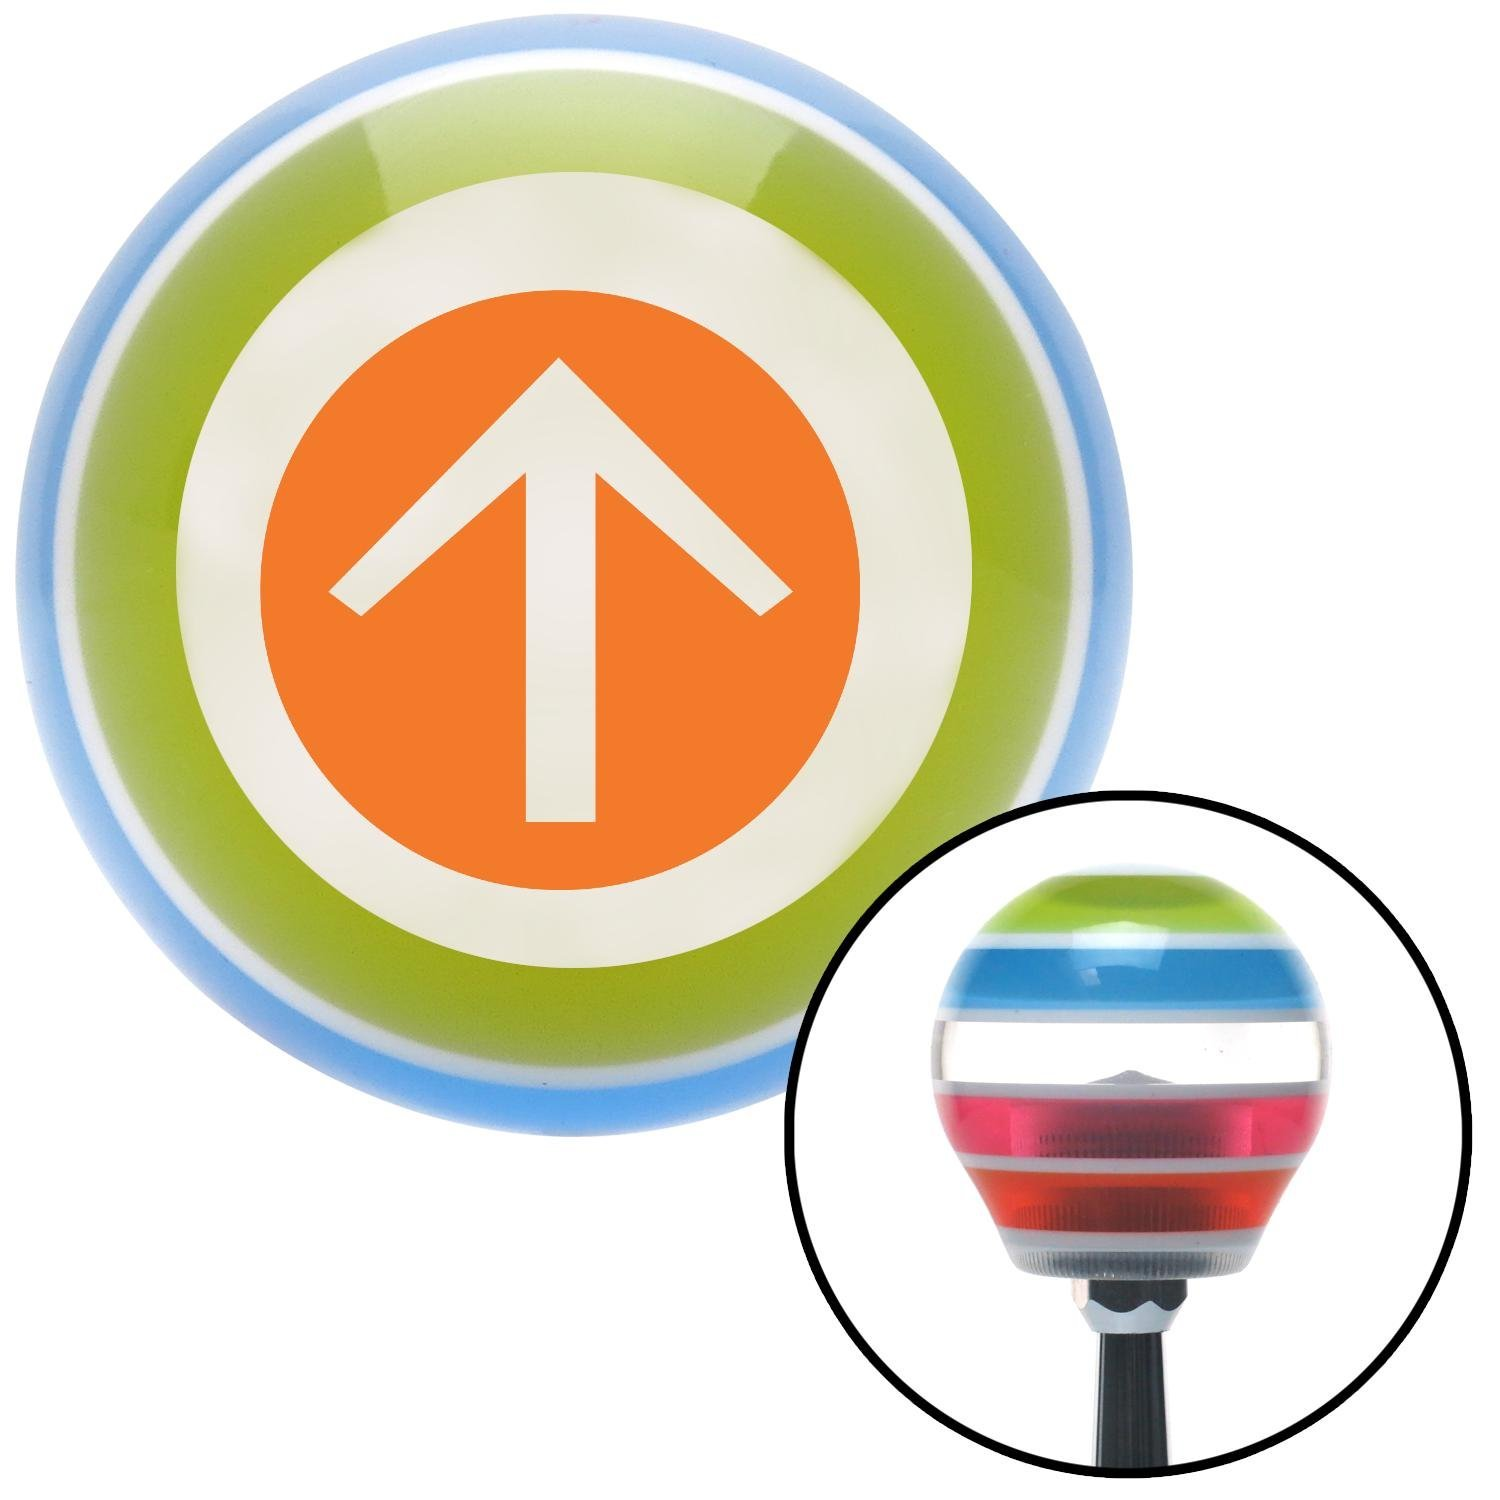 American Shifter 130909 Stripe Shift Knob with M16 x 1.5 Insert Orange Circle Directional Arrow Up